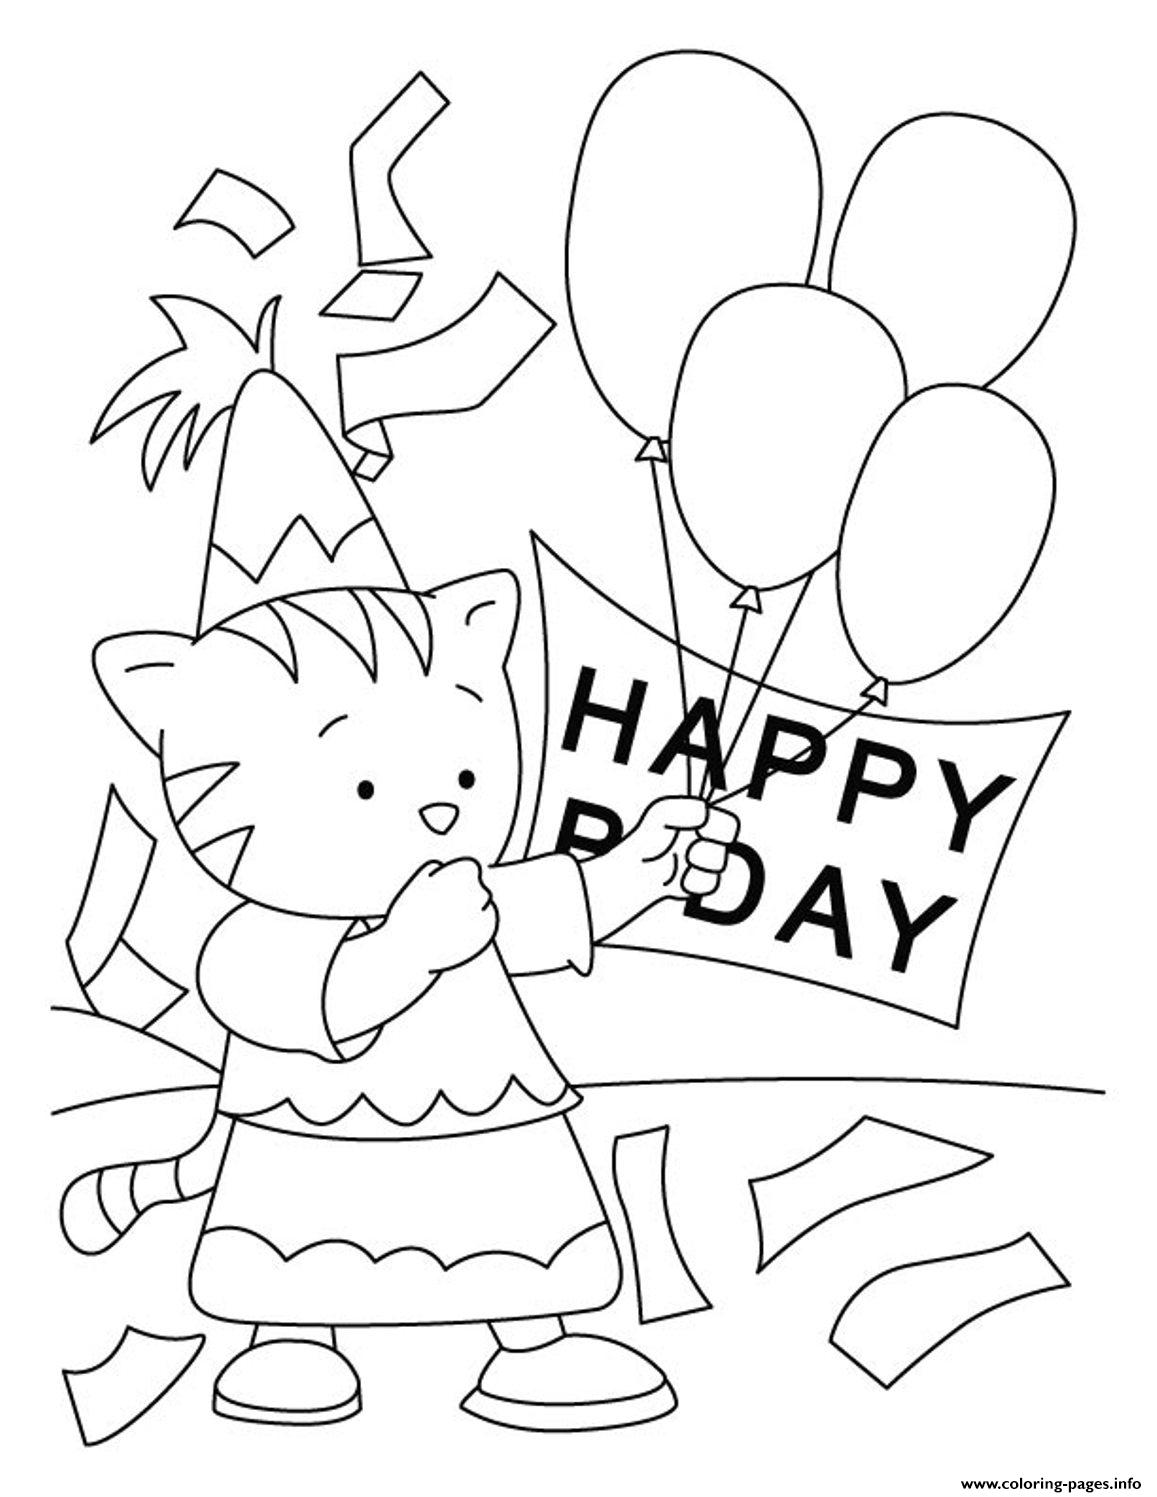 Happy Birthday  For Kidsdd66 coloring pages